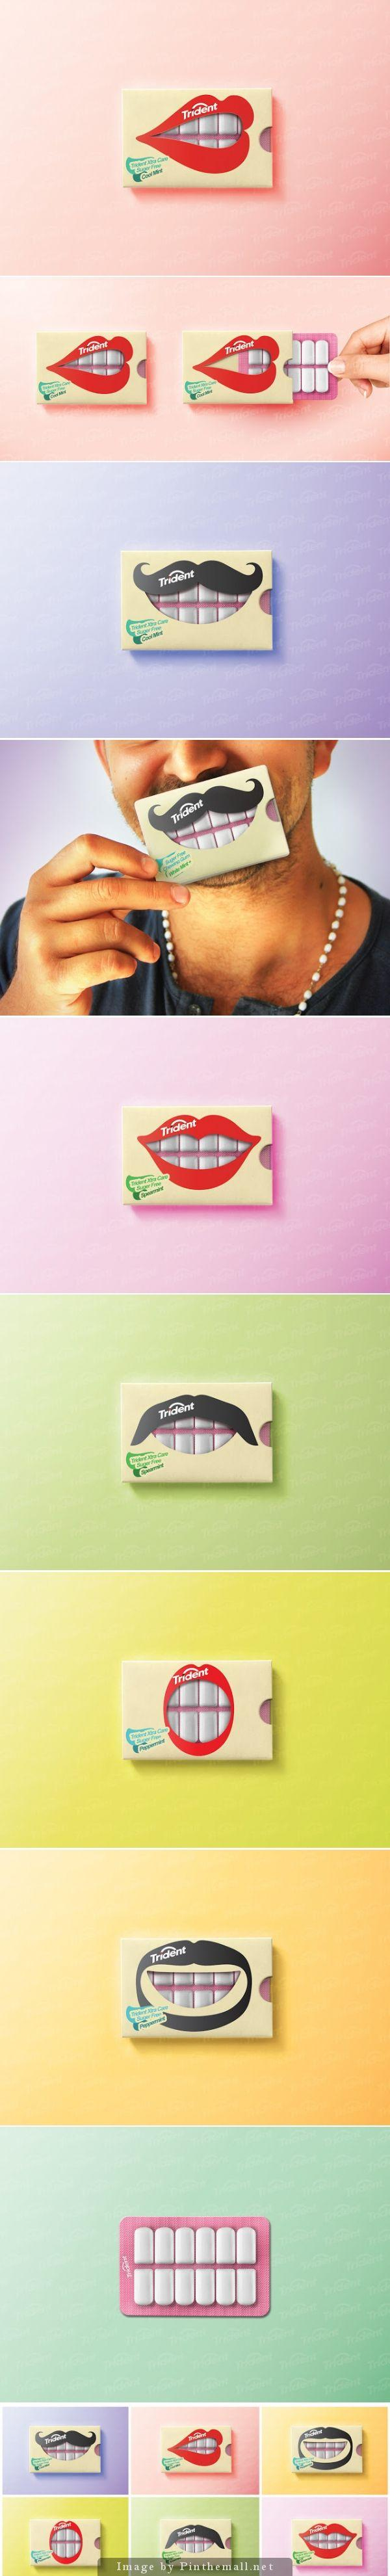 Trident Teeth Friendly Gum